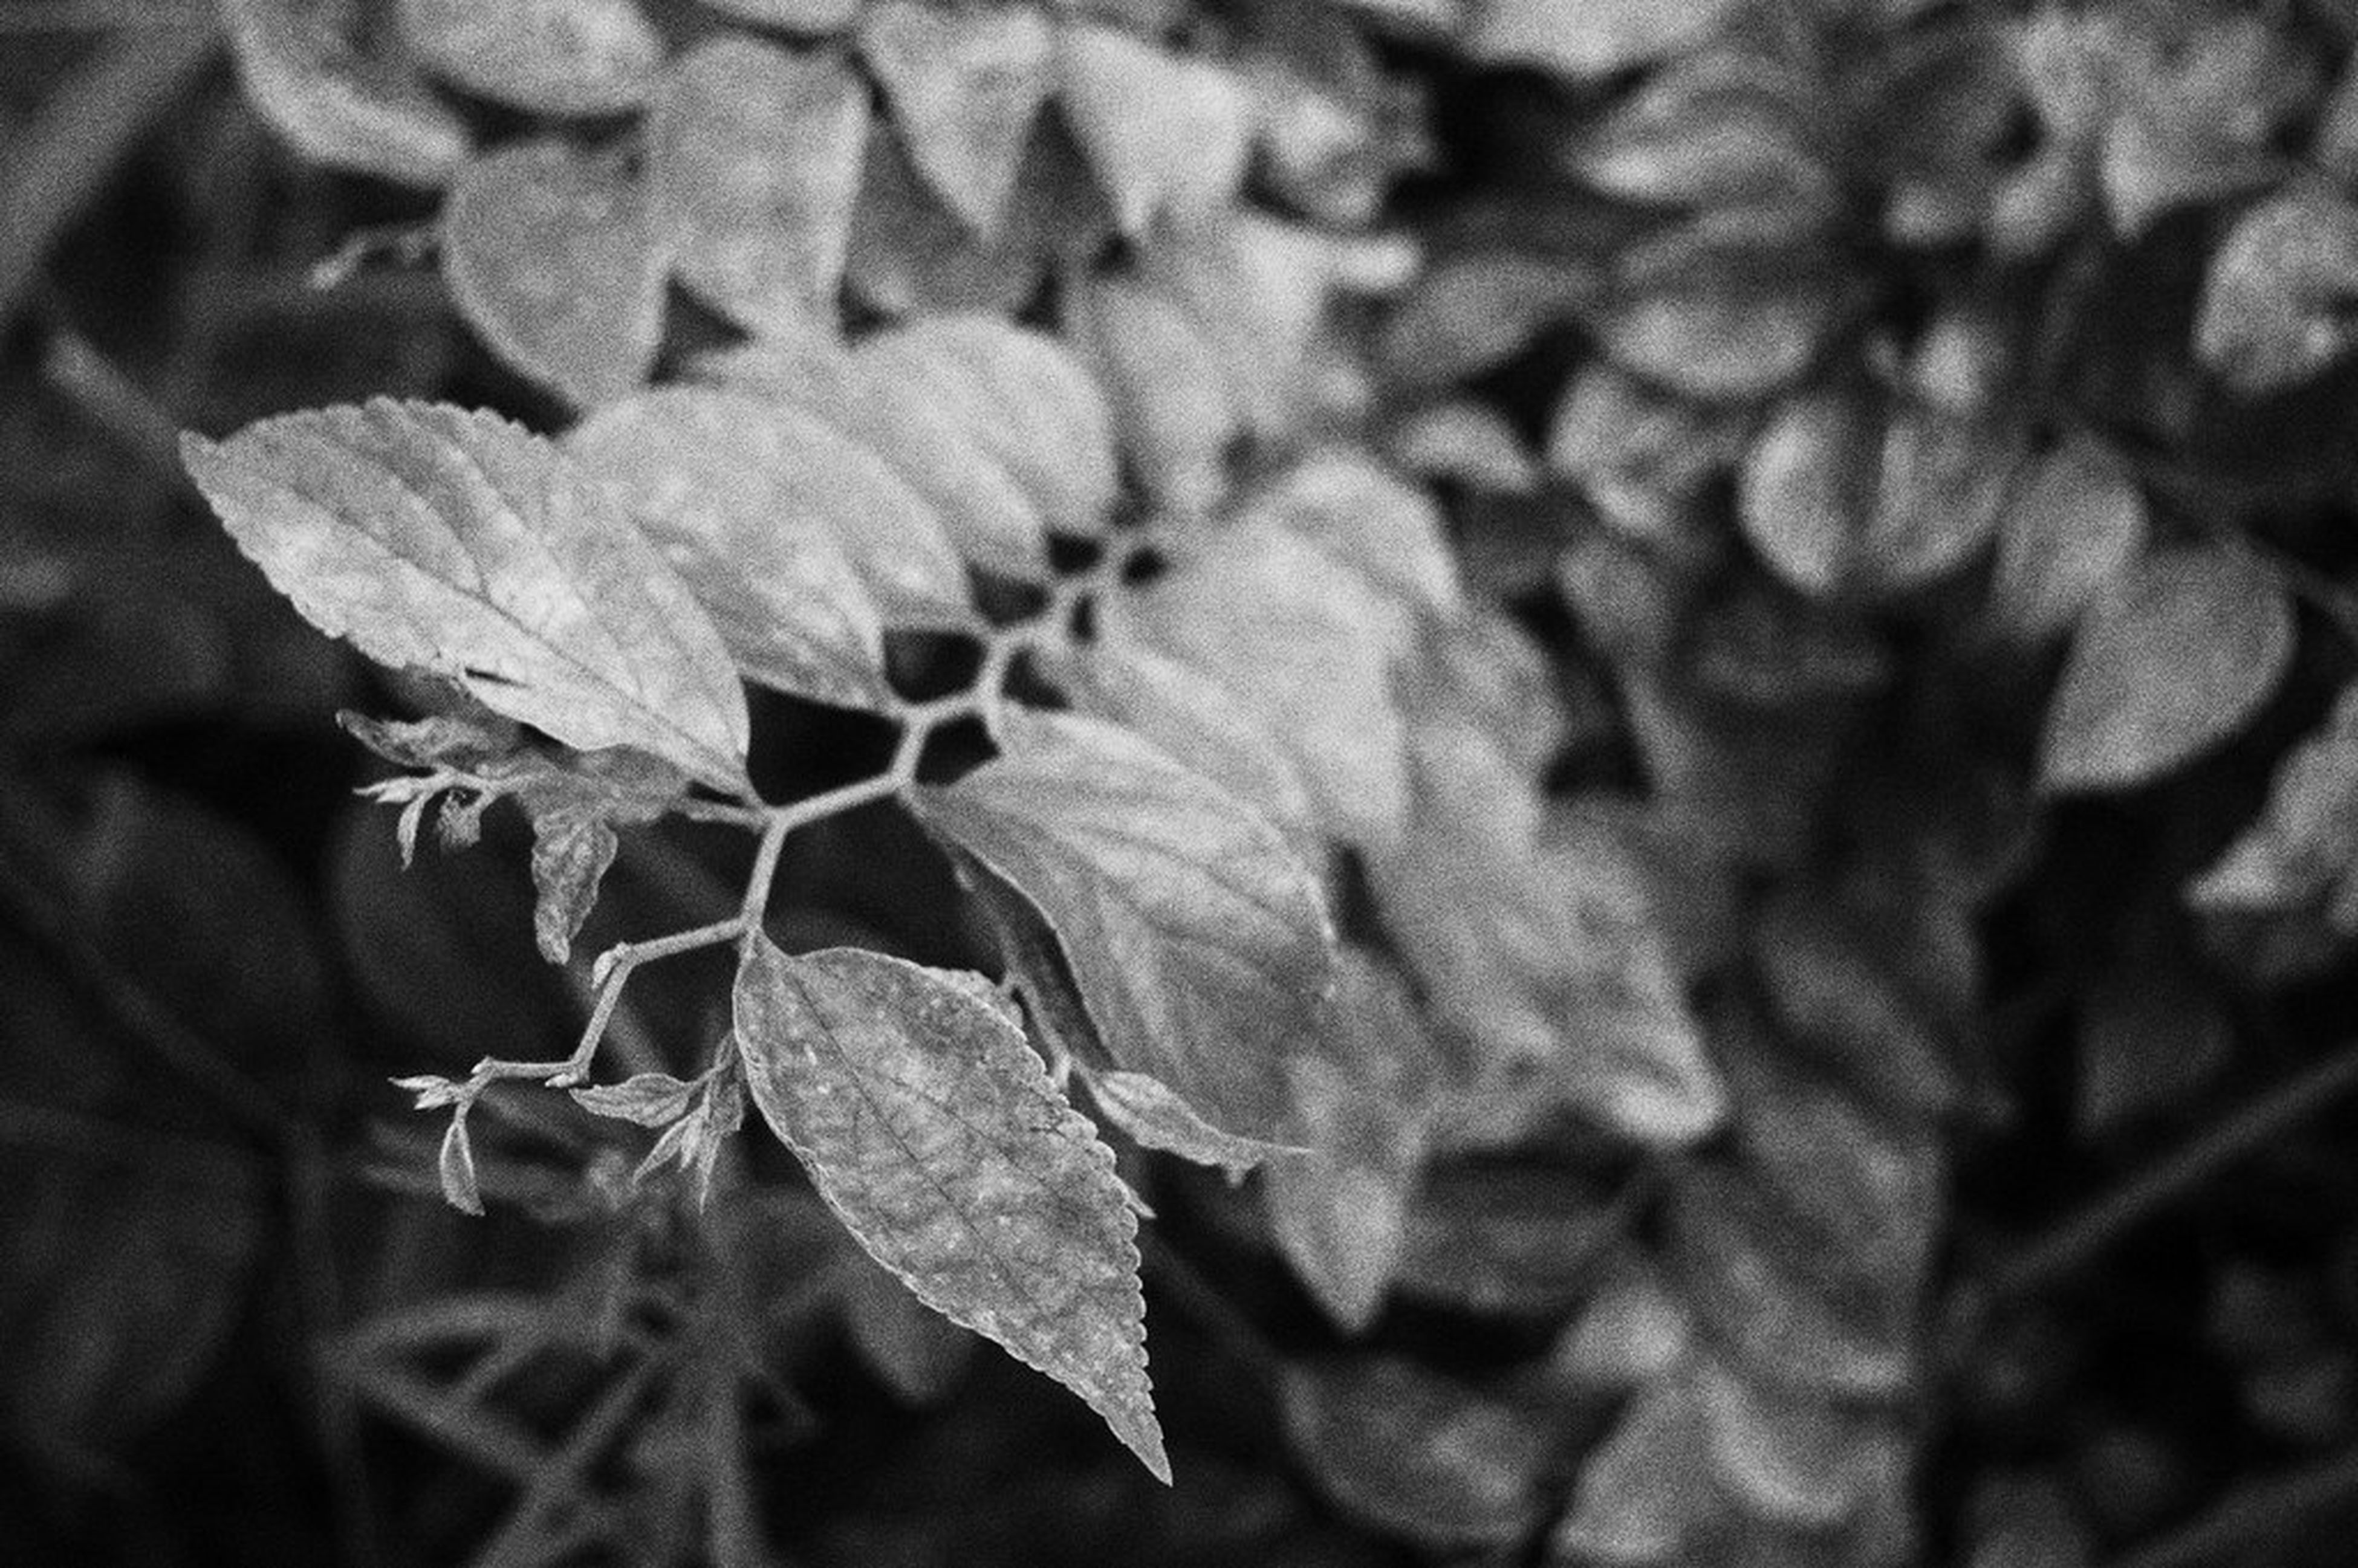 leaf, close-up, growth, plant, leaf vein, leaves, nature, natural pattern, selective focus, day, focus on foreground, branch, outdoors, beauty in nature, fragility, botany, green color, green, full frame